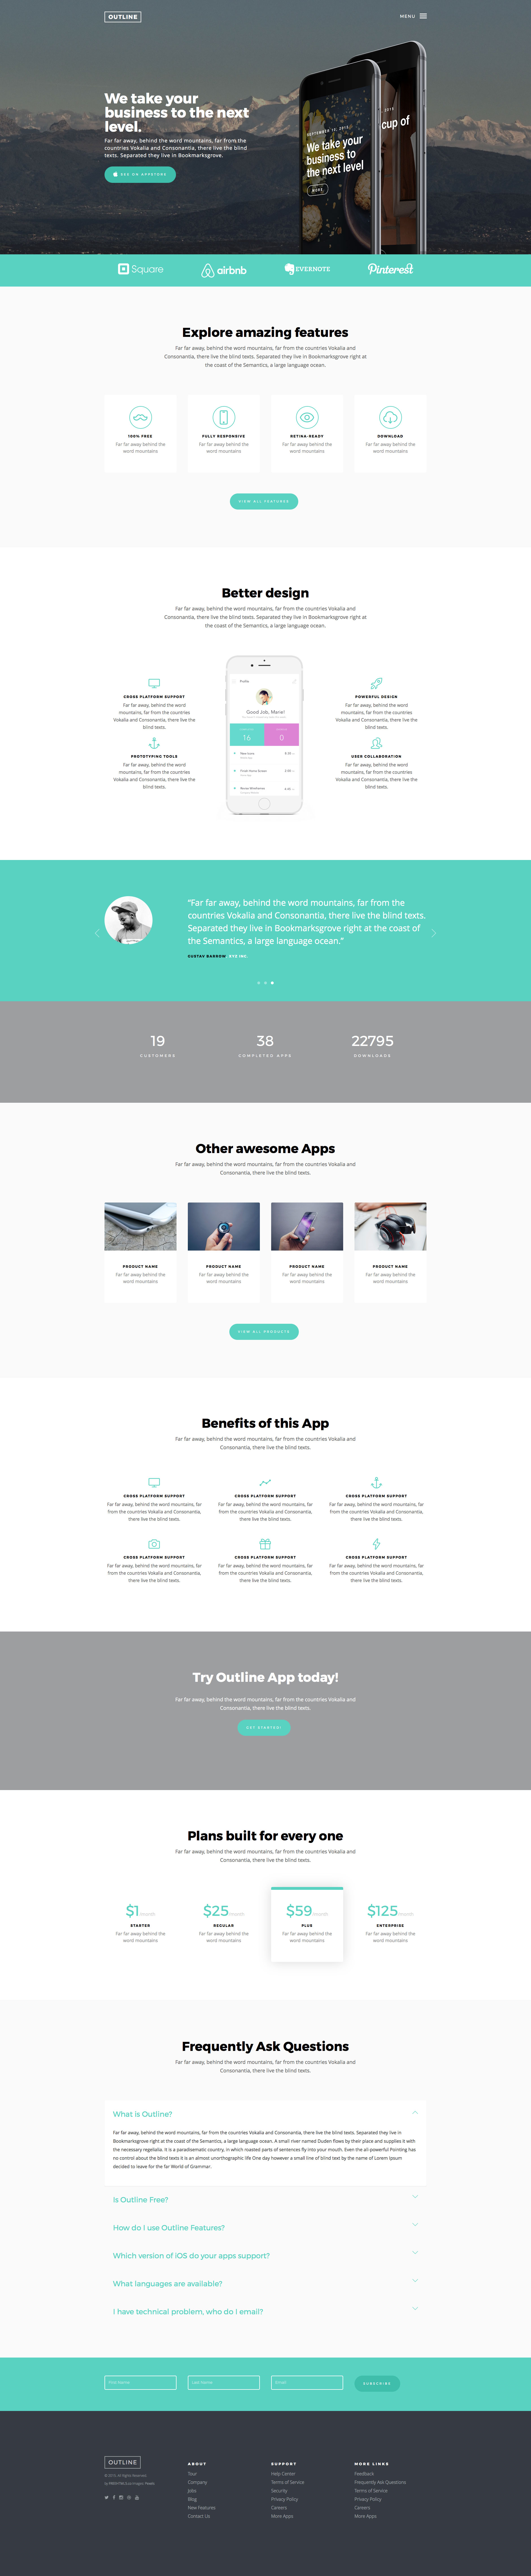 Outline is a free responsive HTML5 application website template made with Bootstrap. It is a ready-to-use one page template perfect for App landing pages. Outline is a fully responsive and Retina-ready HTML5 template.